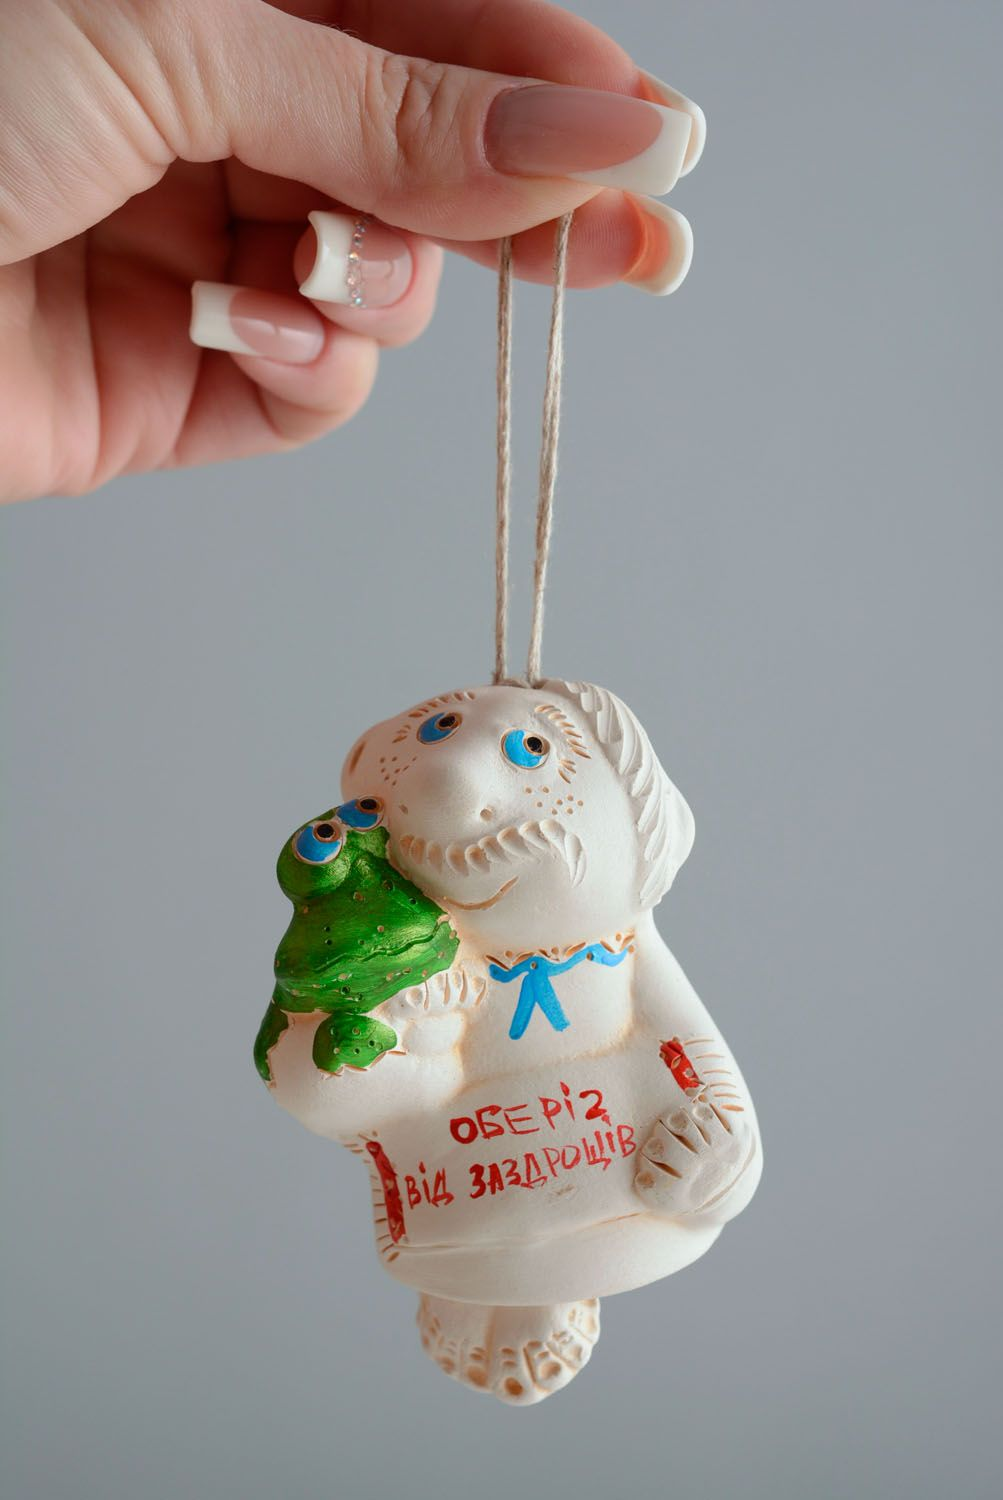 Ceramic charm bell Protection from Envious Persons photo 4